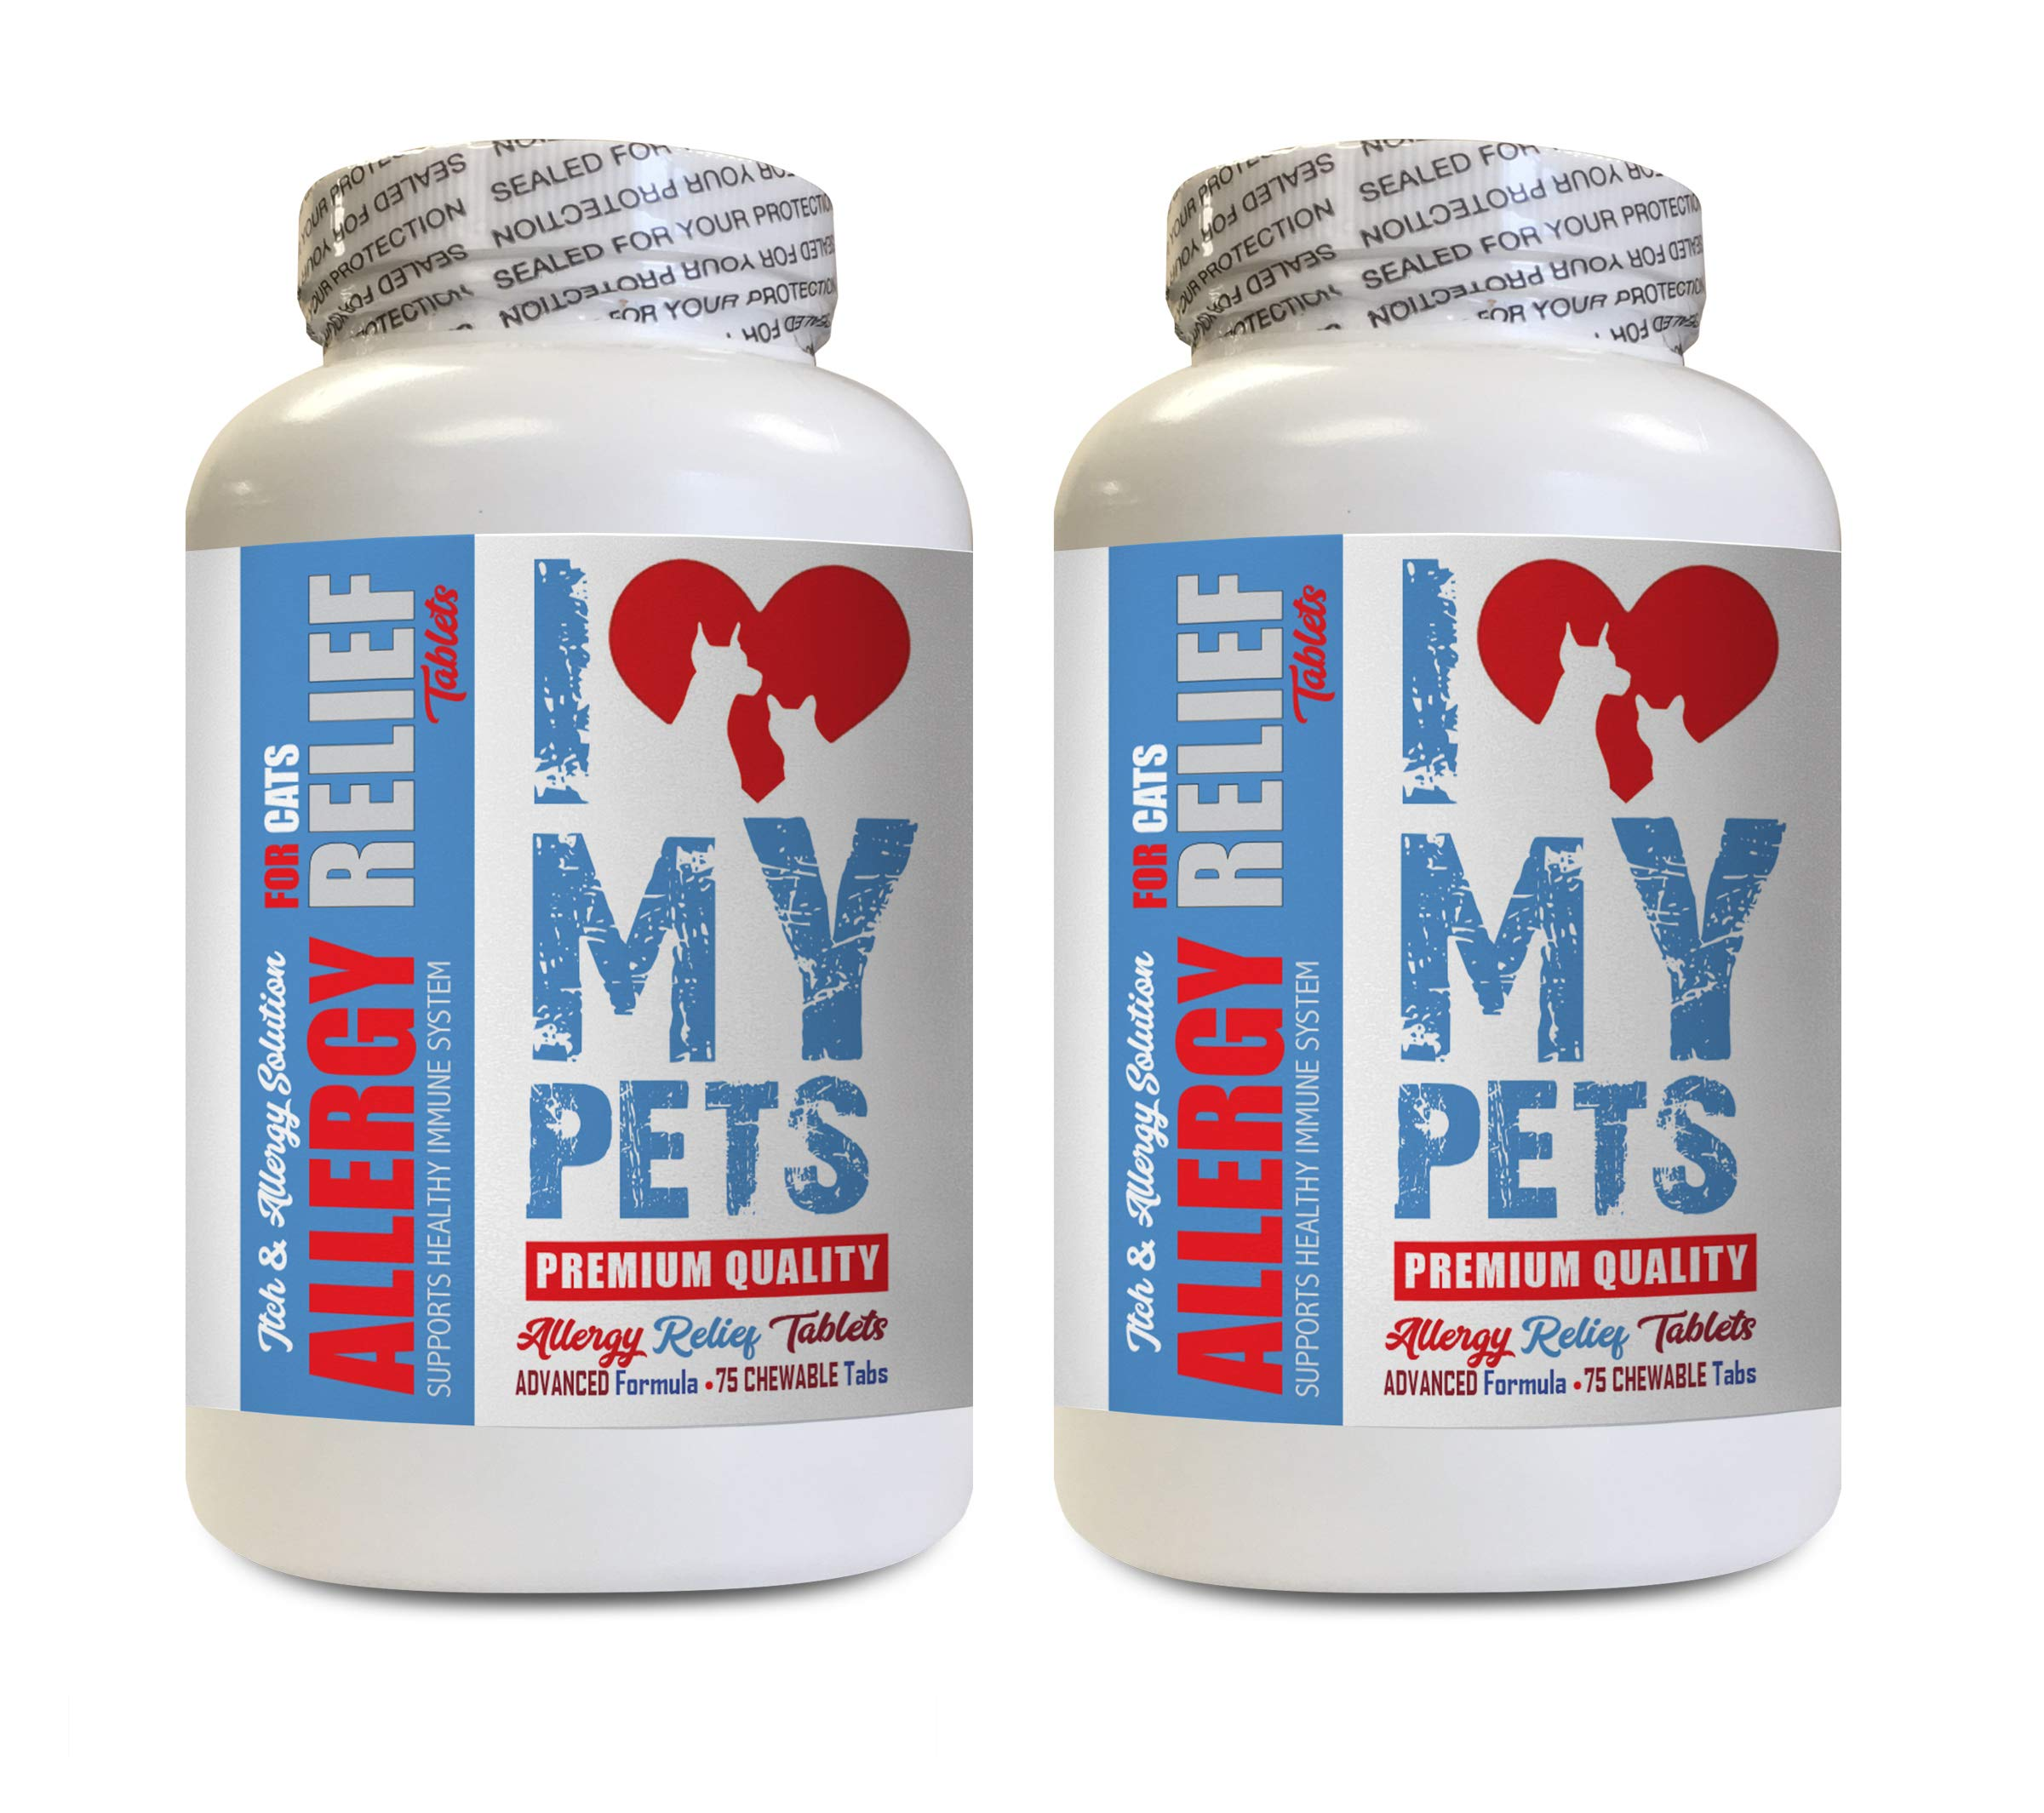 I LOVE MY PETS Anti Itch Cats - Cats Allergy Relief - Itch Relief - Premium Supplement - Treats - Anti Itch for Cats - 150 Tablets (2 Bottles) by I LOVE MY PETS